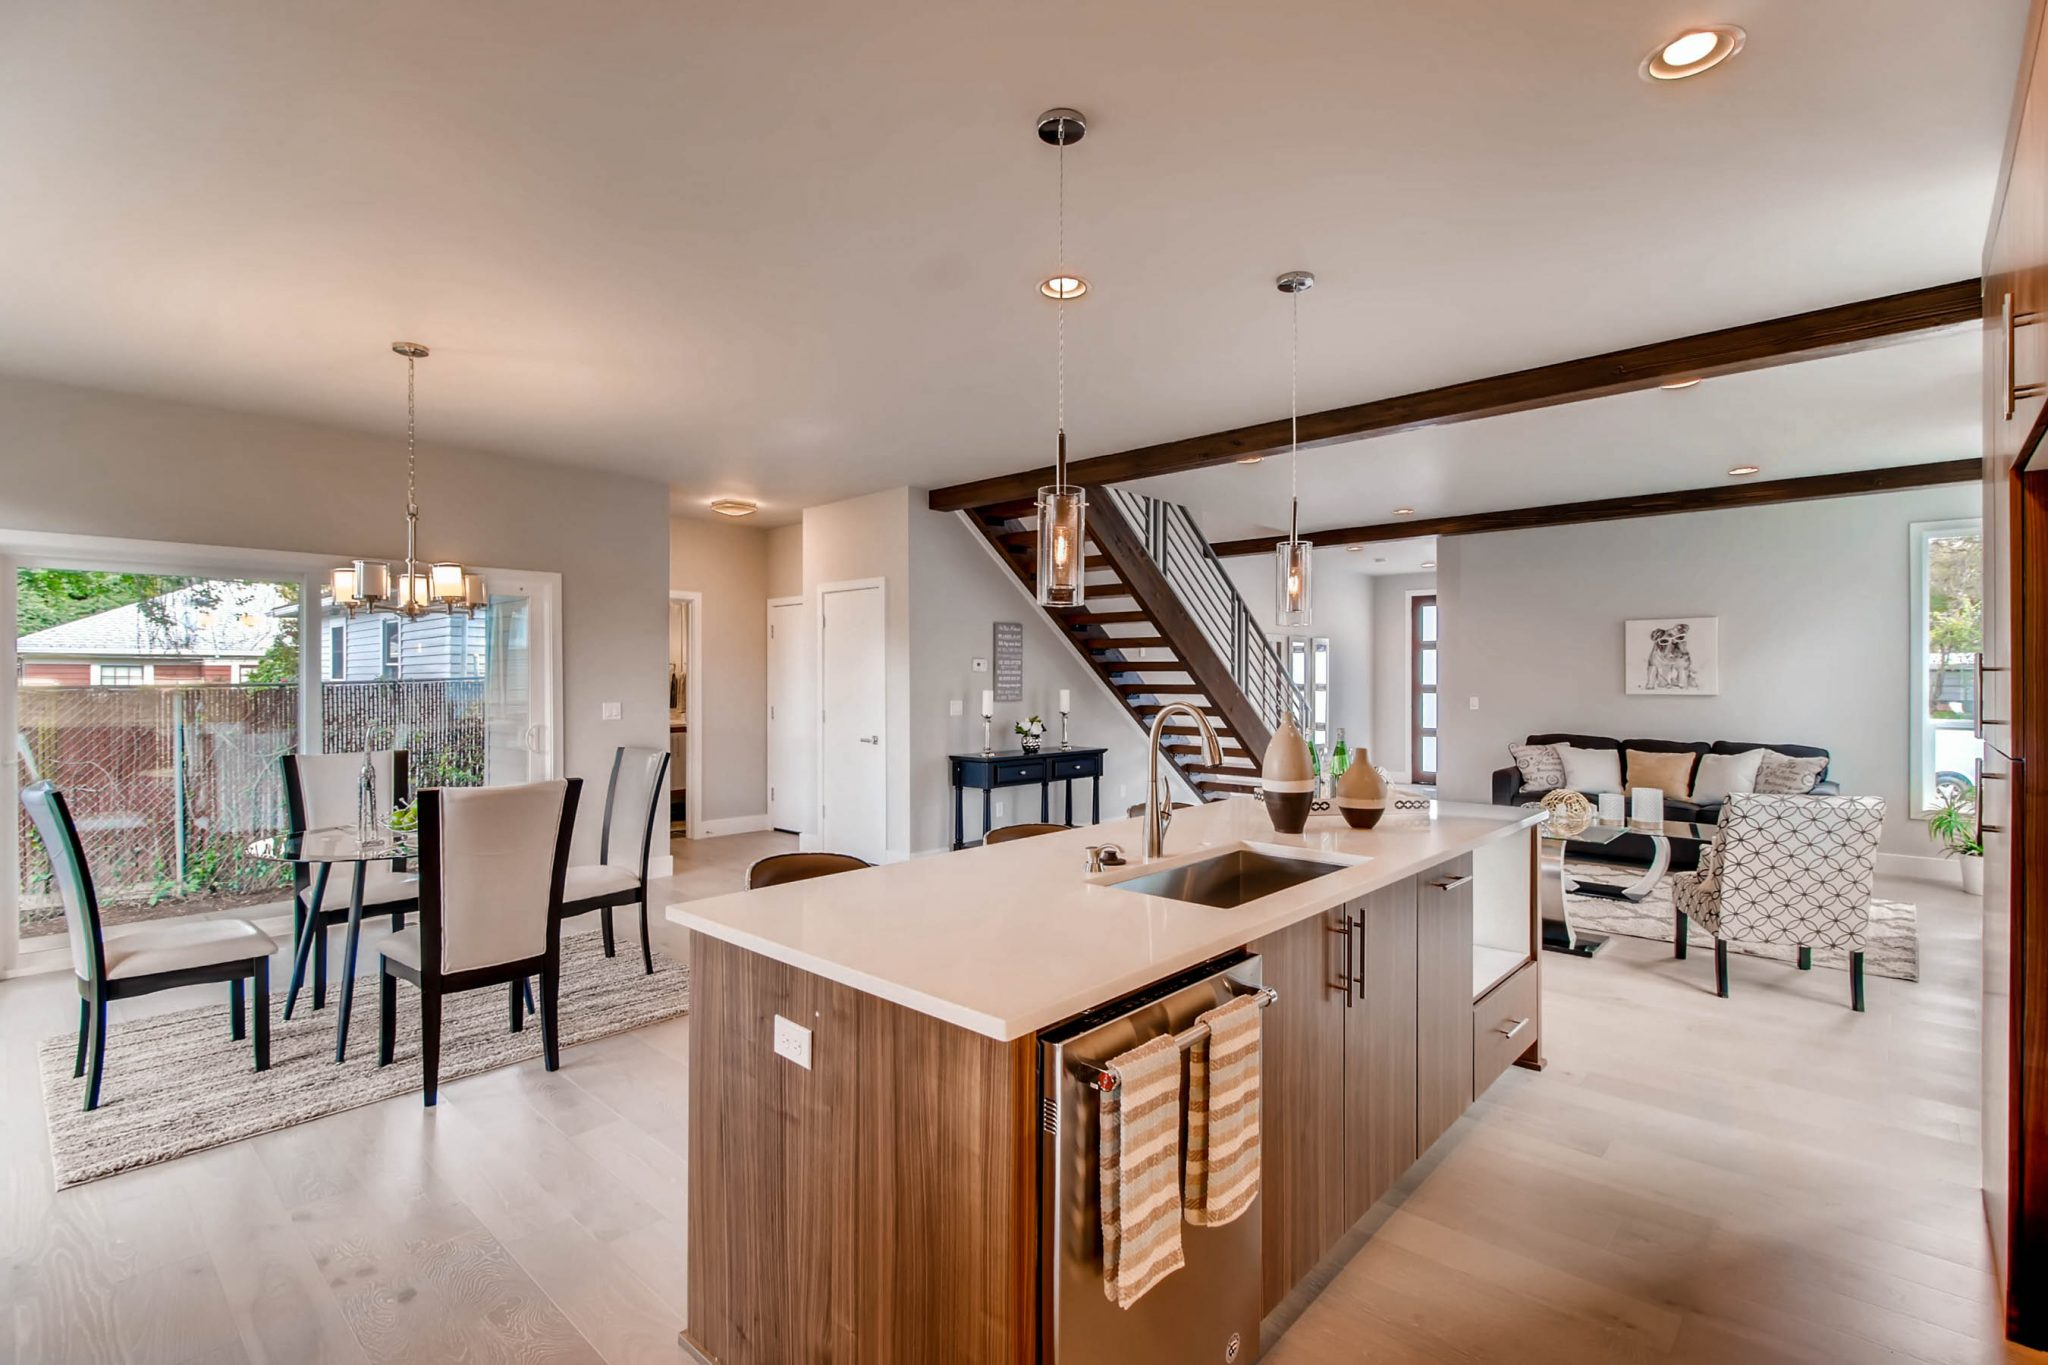 Open concept, modern remodel with view of the dining and sitting areas, stairwell, and kitchen island